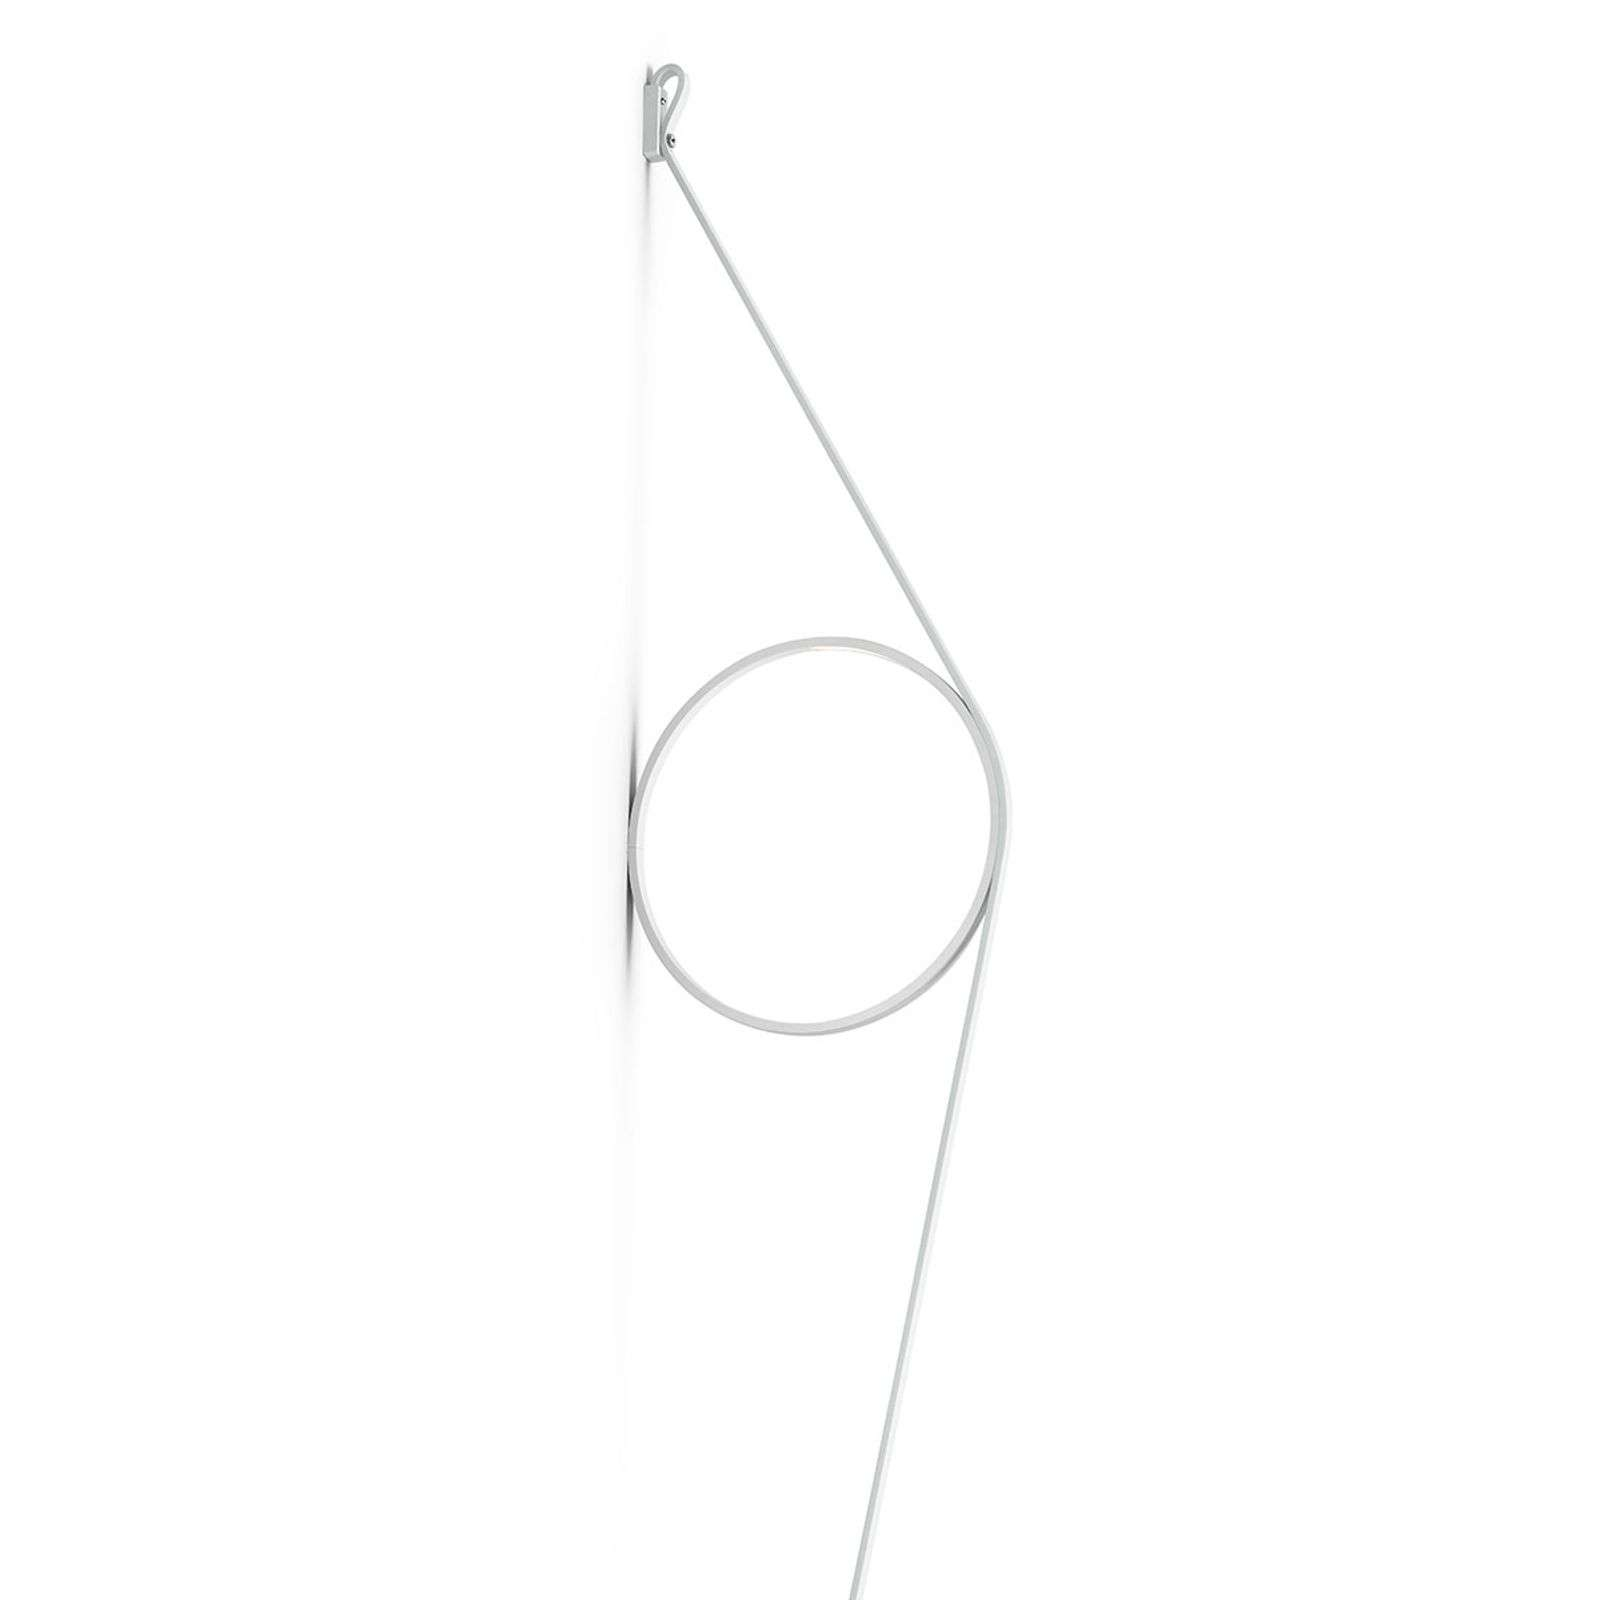 FLOS Wirering wit LED wandlamp, Ring wit